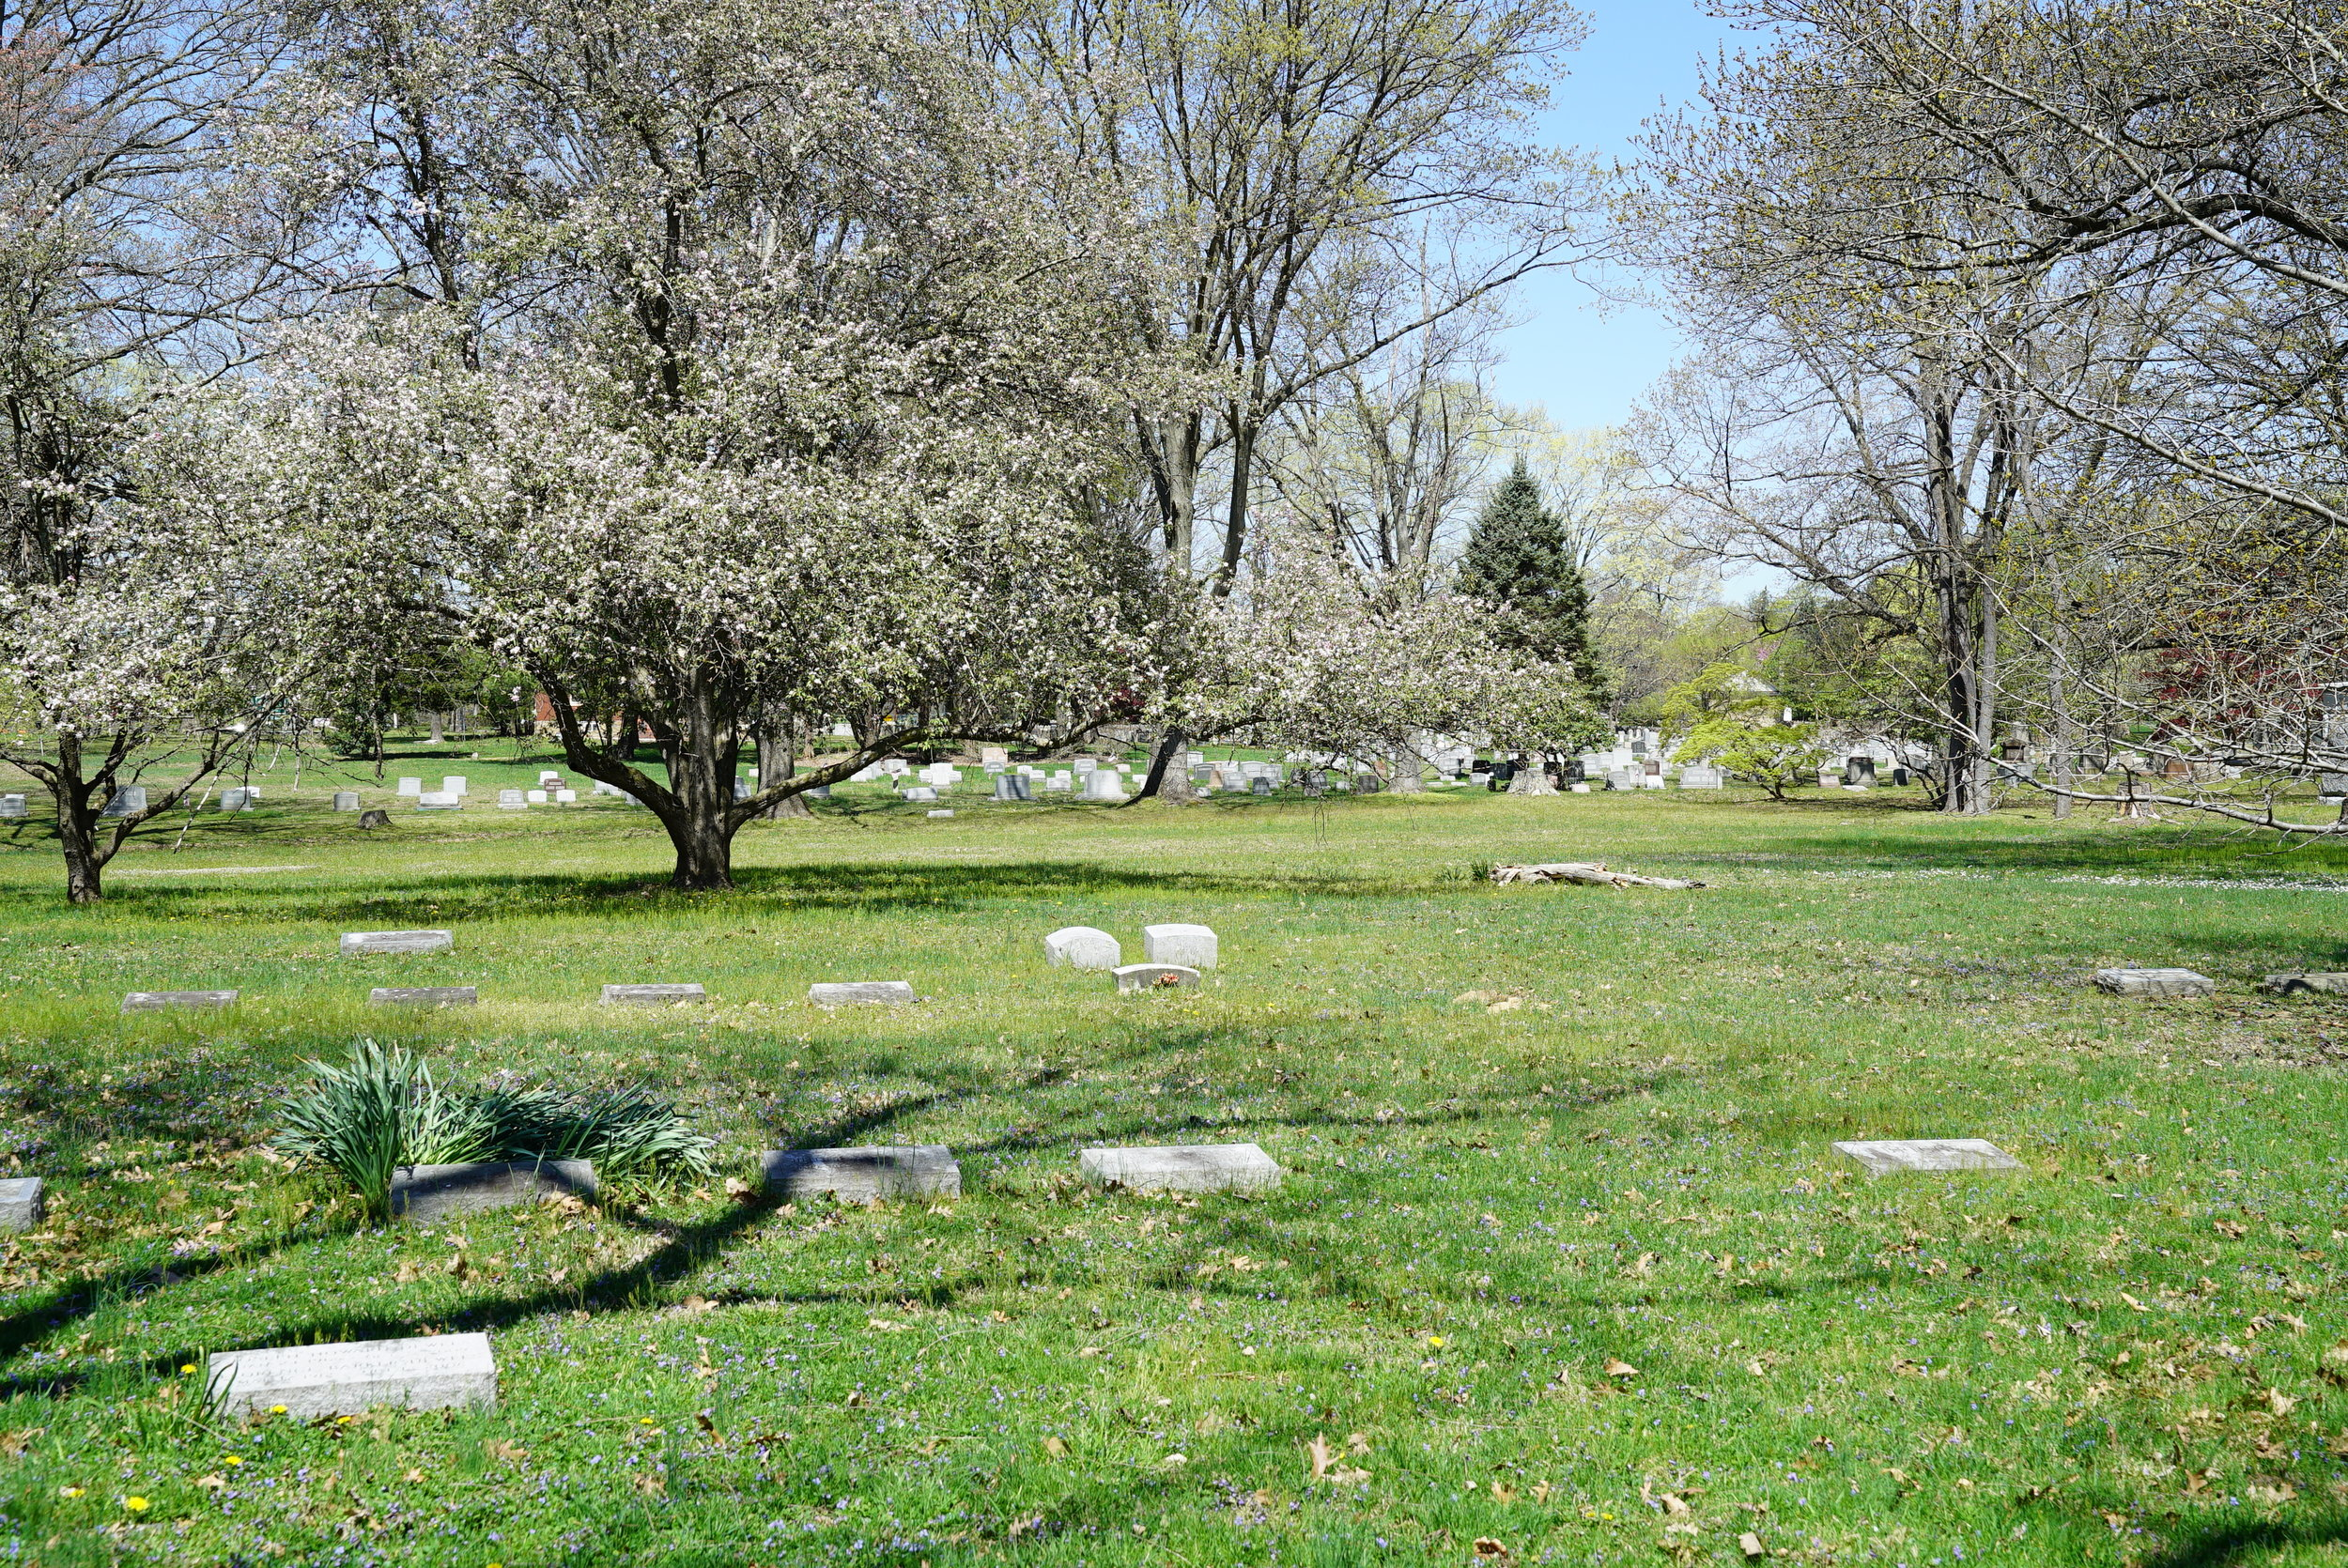 On the grounds of Middletown Friends Meeting Cemetery, looking towards its neighbor, Cumberland Cemetery.